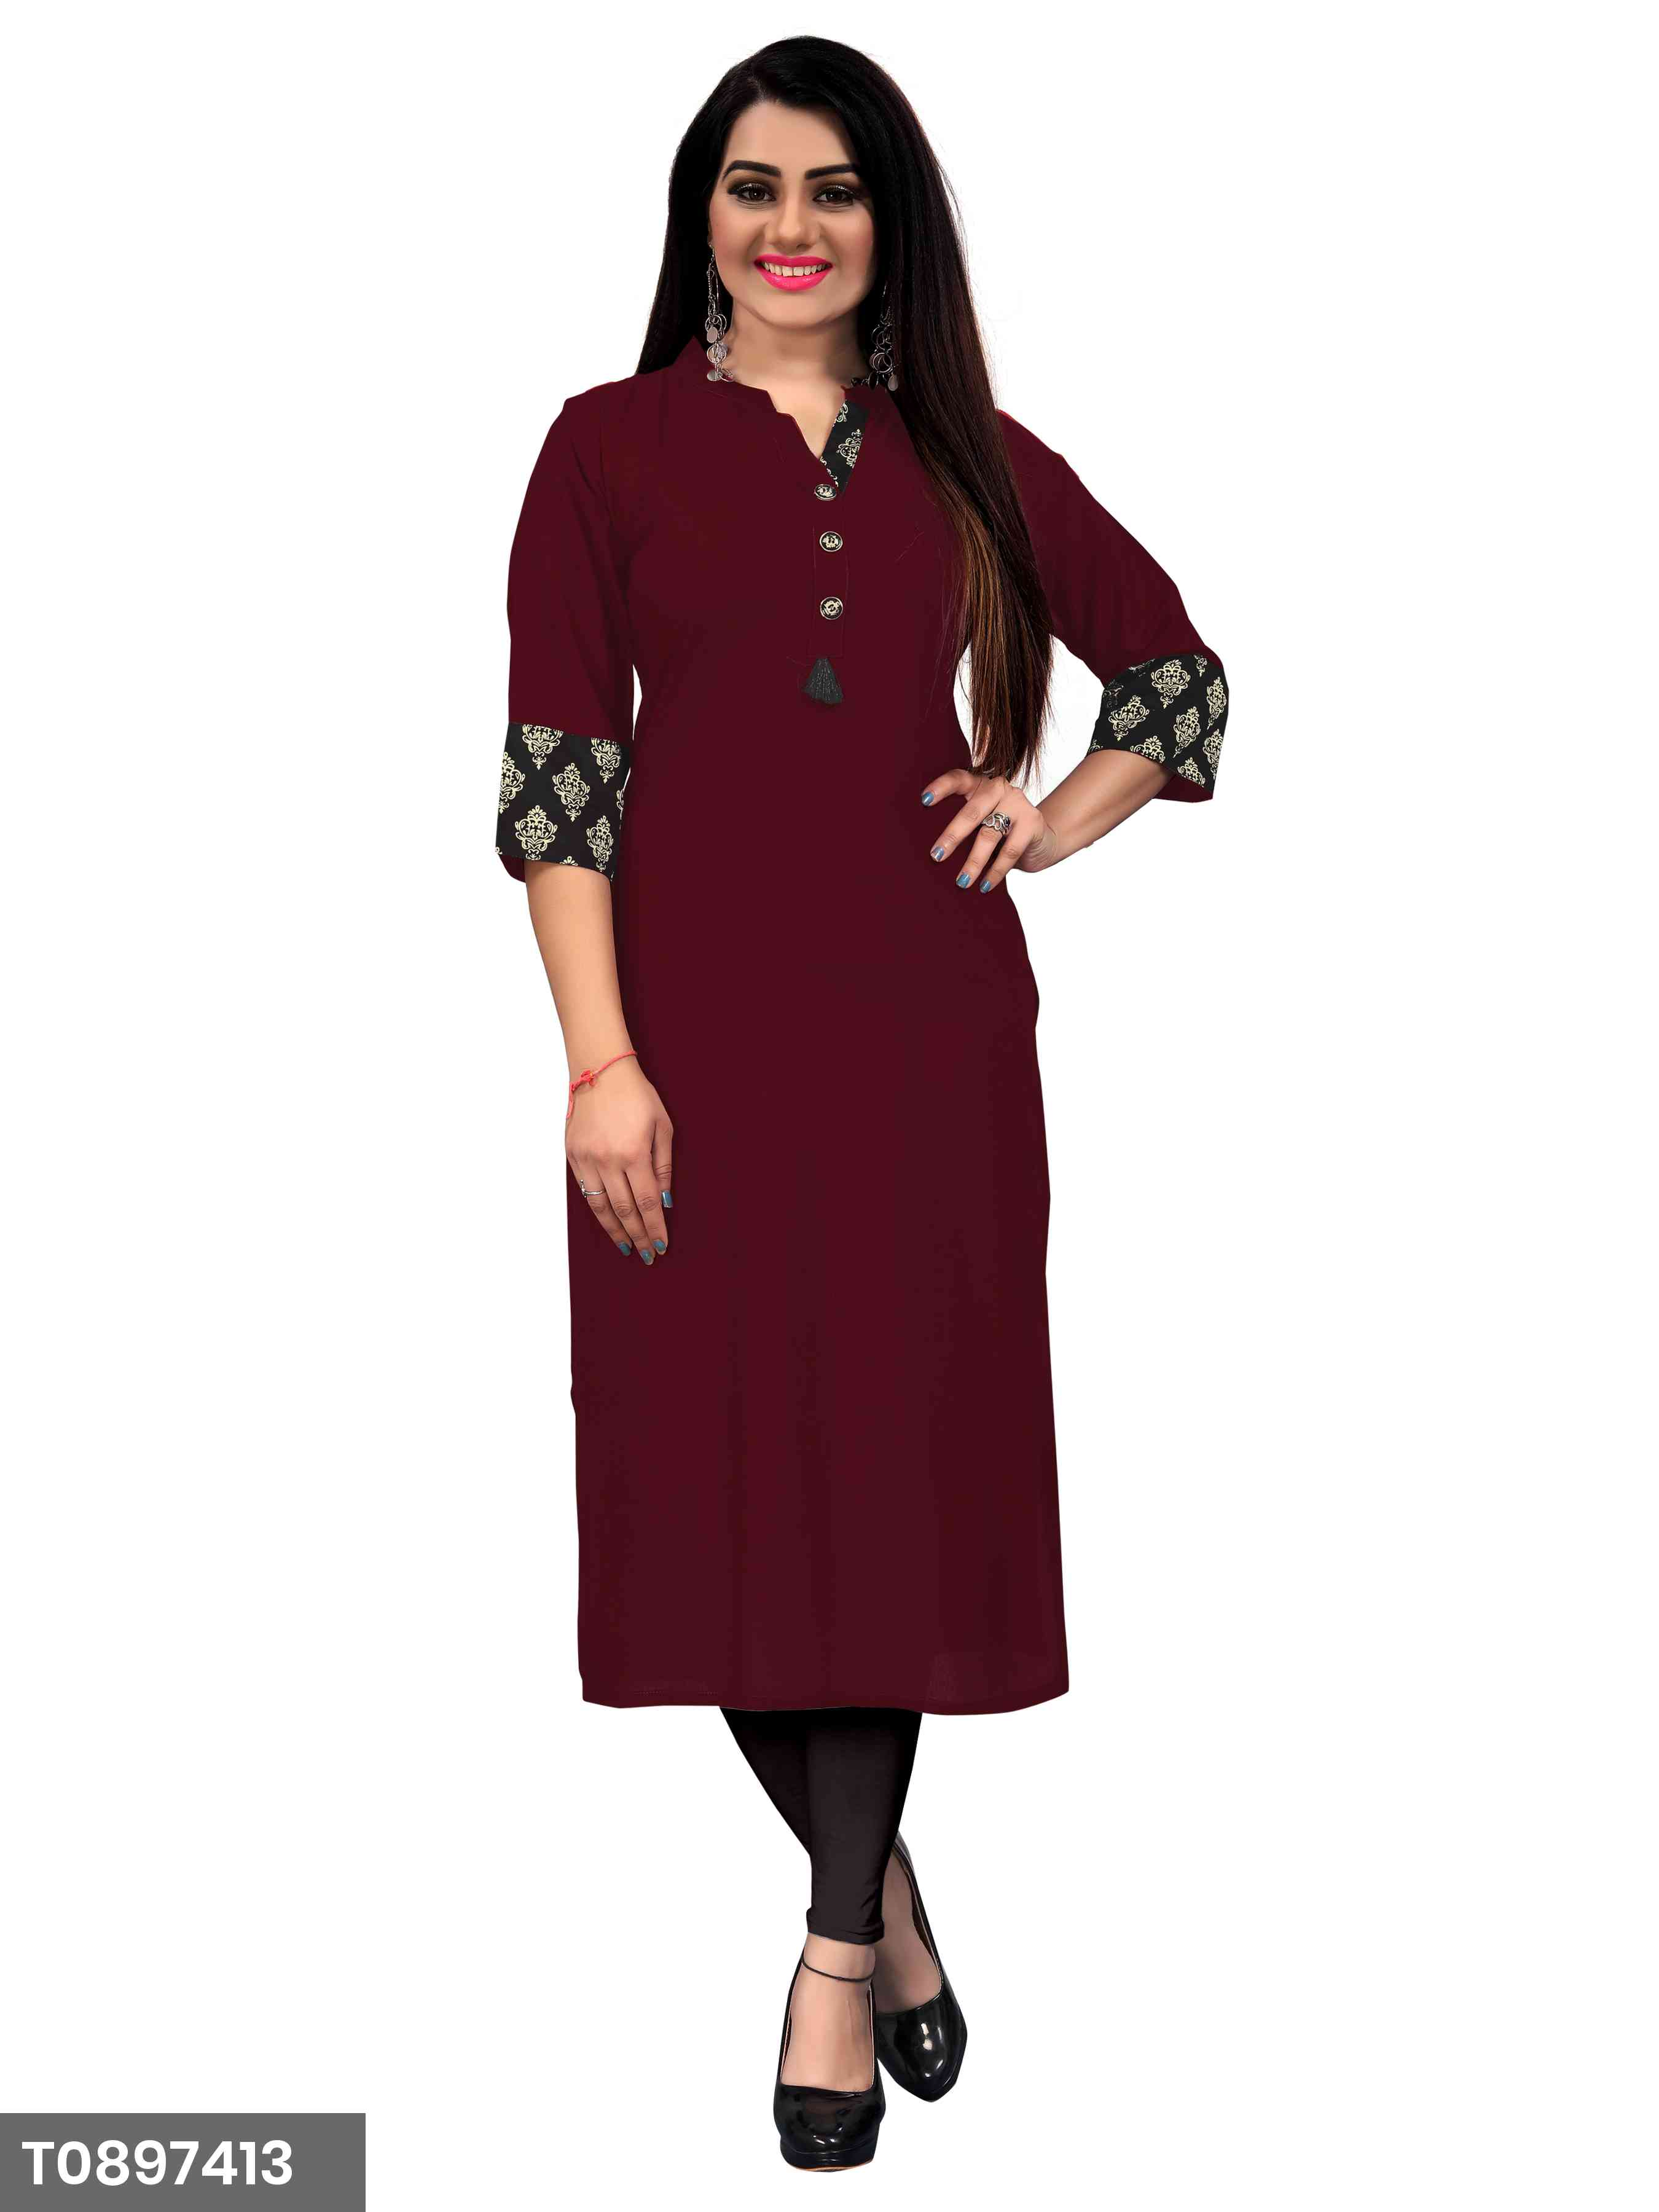 New Plain Maroon Color Rayon Kurti For Women's